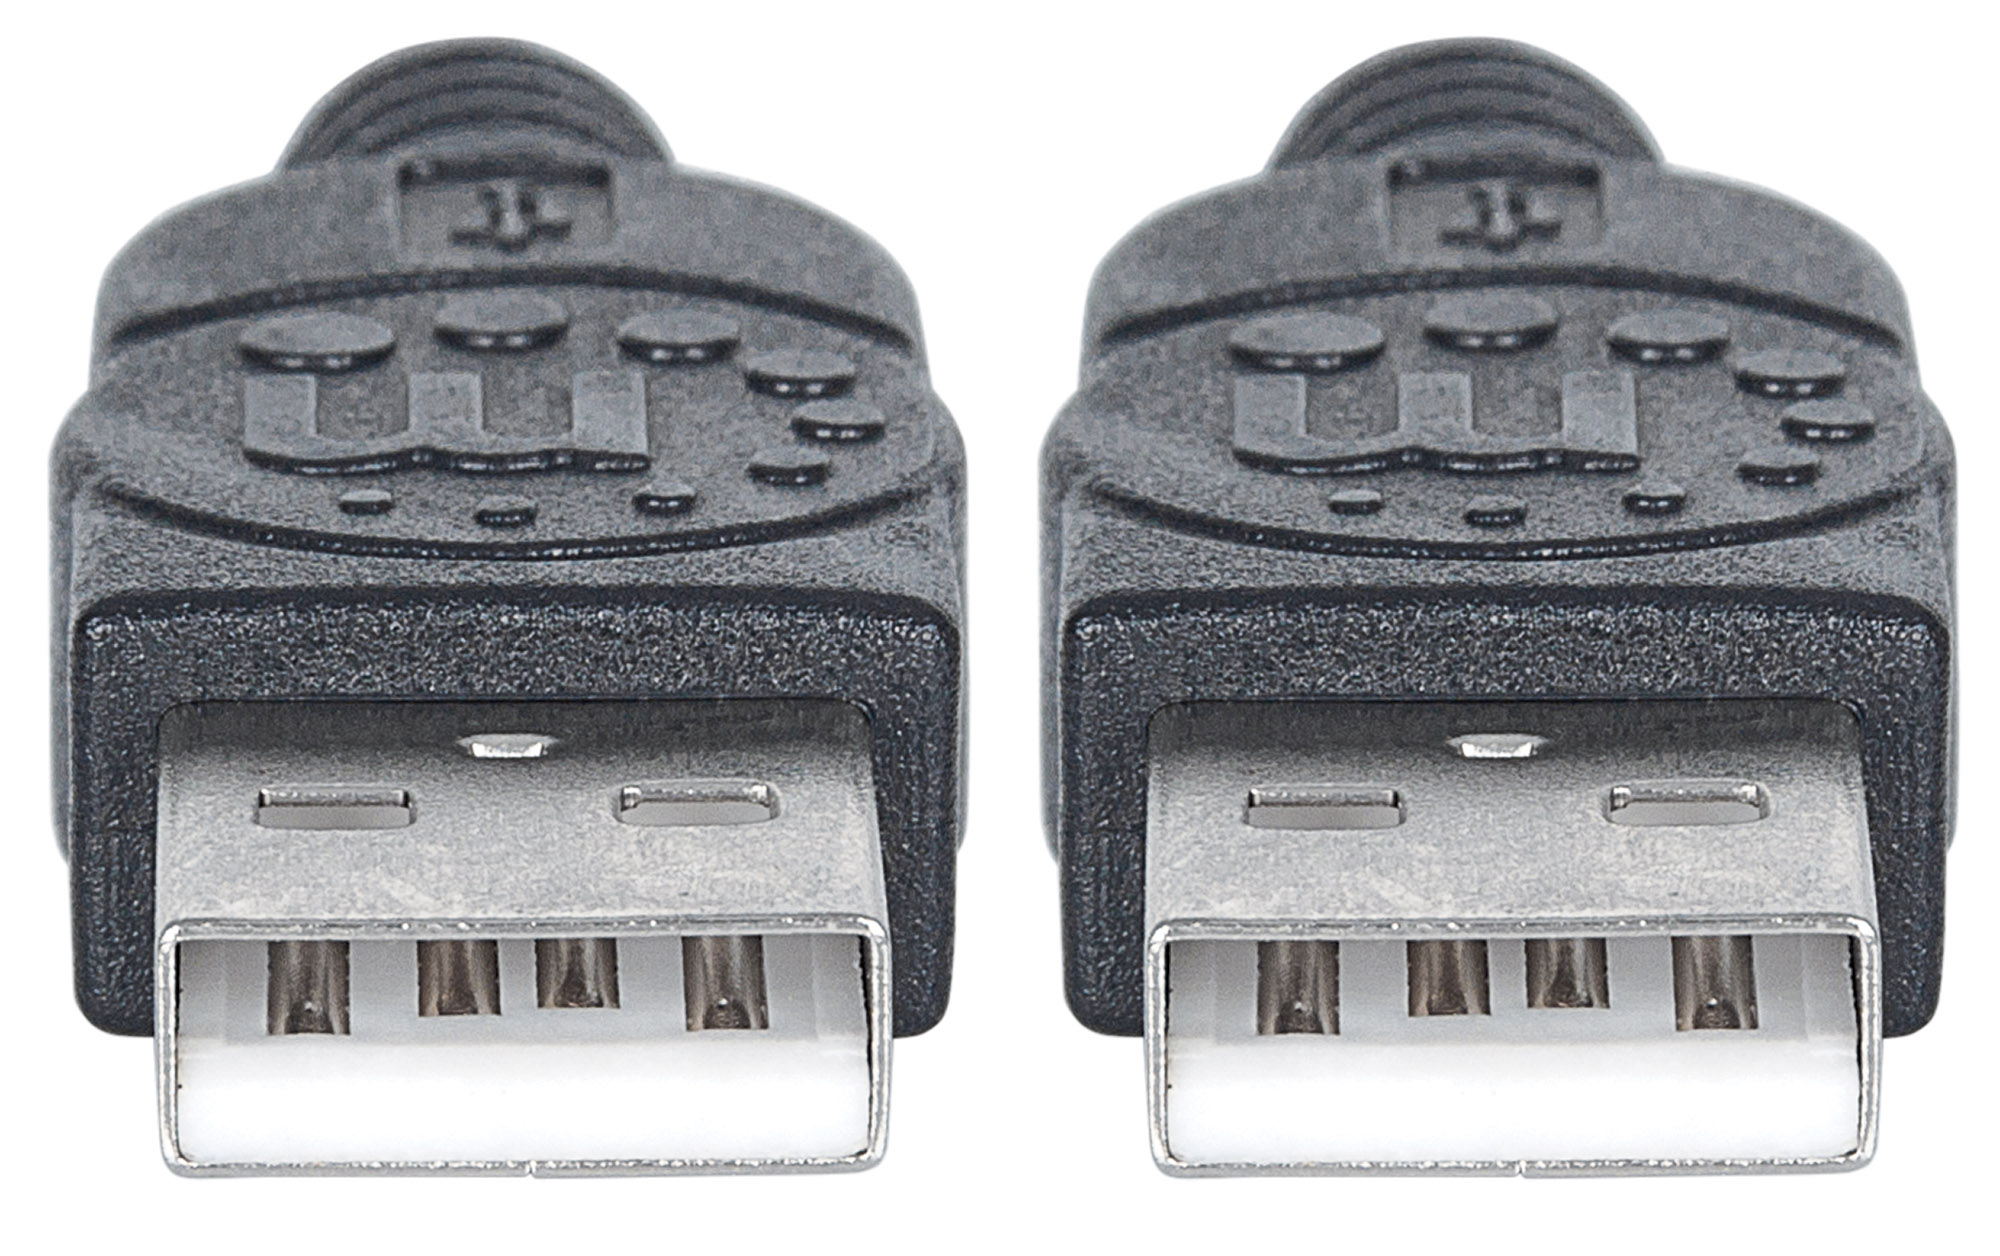 Hi-Speed USB A Device Cable